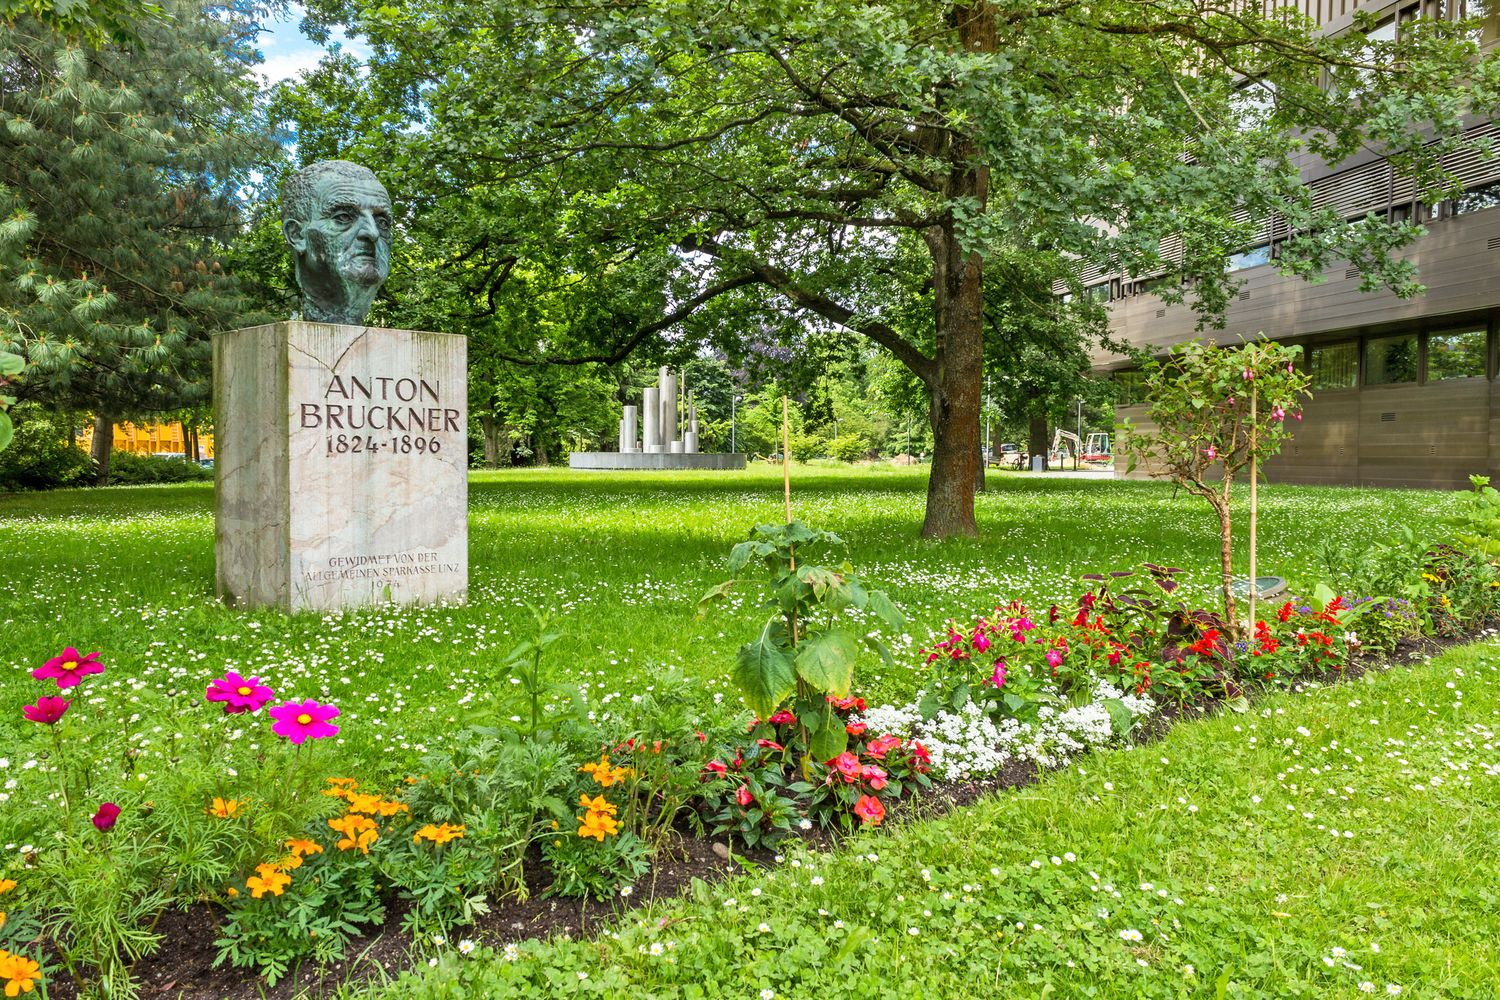 Anton Bruckner memorial in Linz © INTERKULTUR